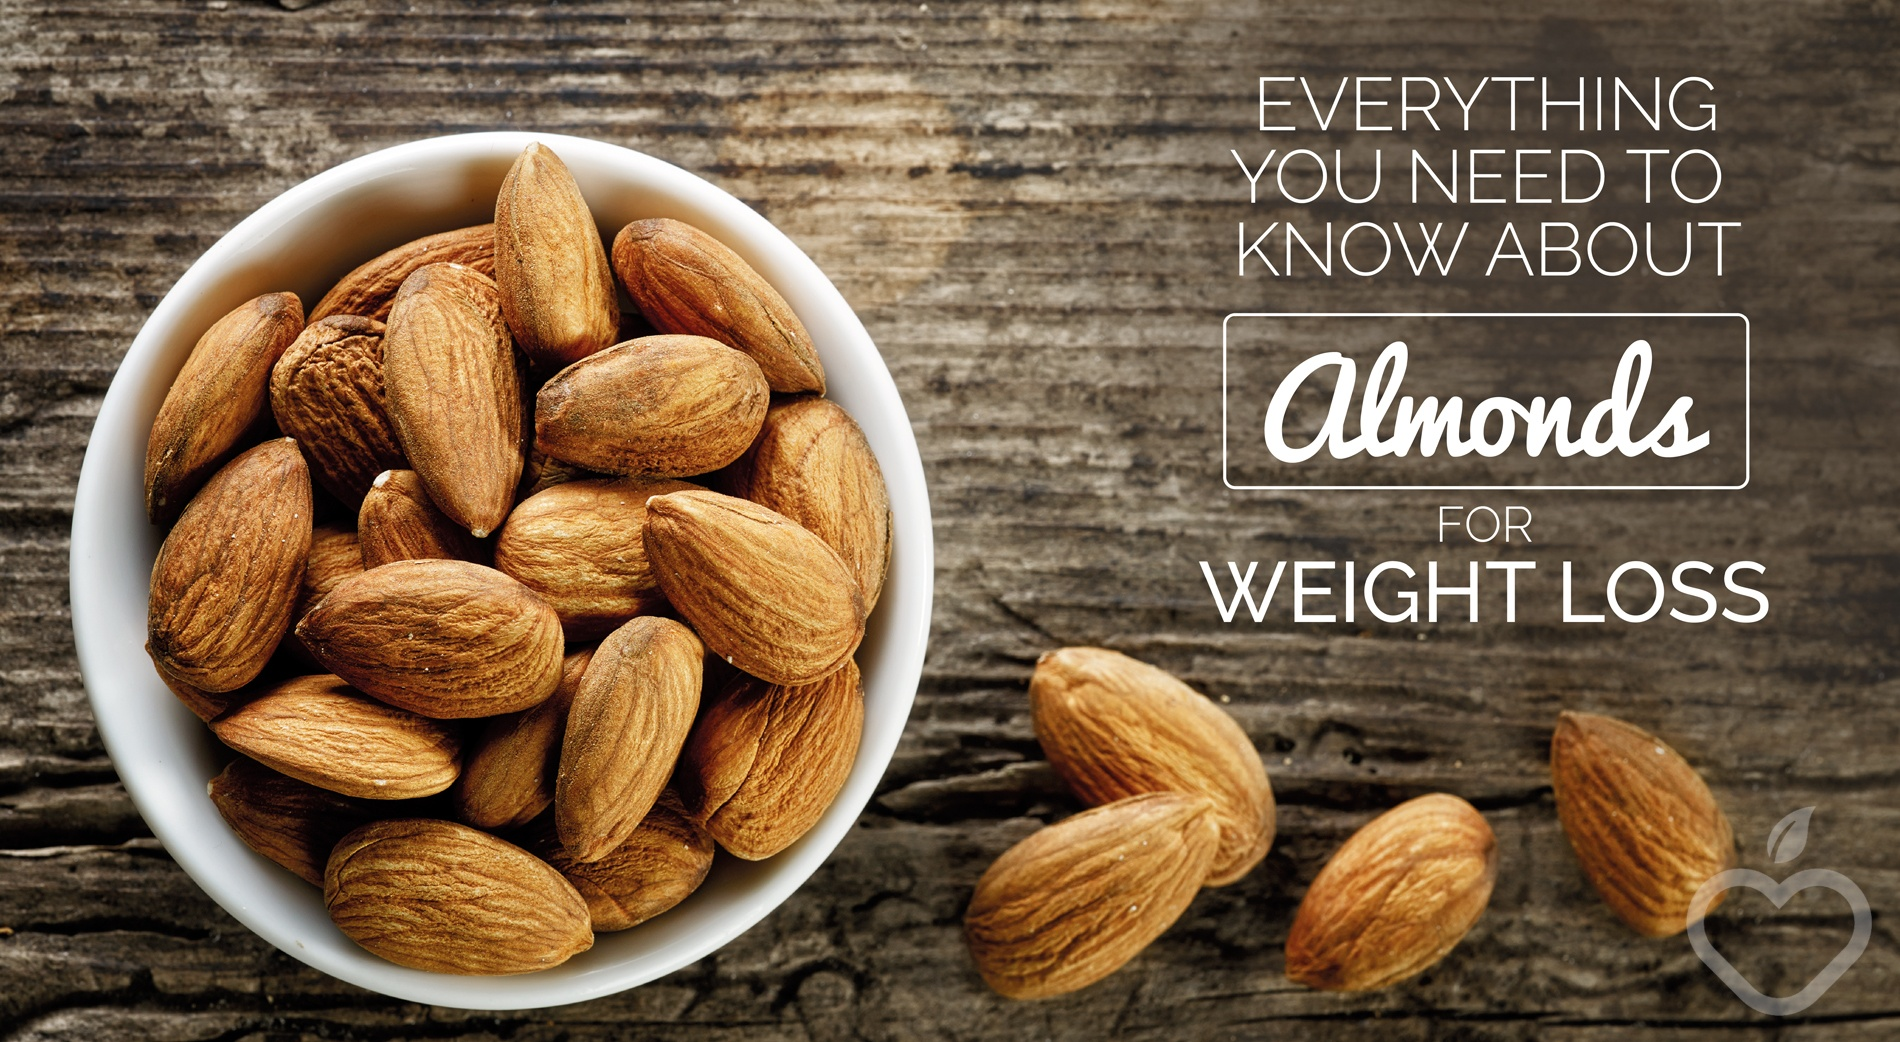 Everything You Need To Know About Almonds for Weight Loss